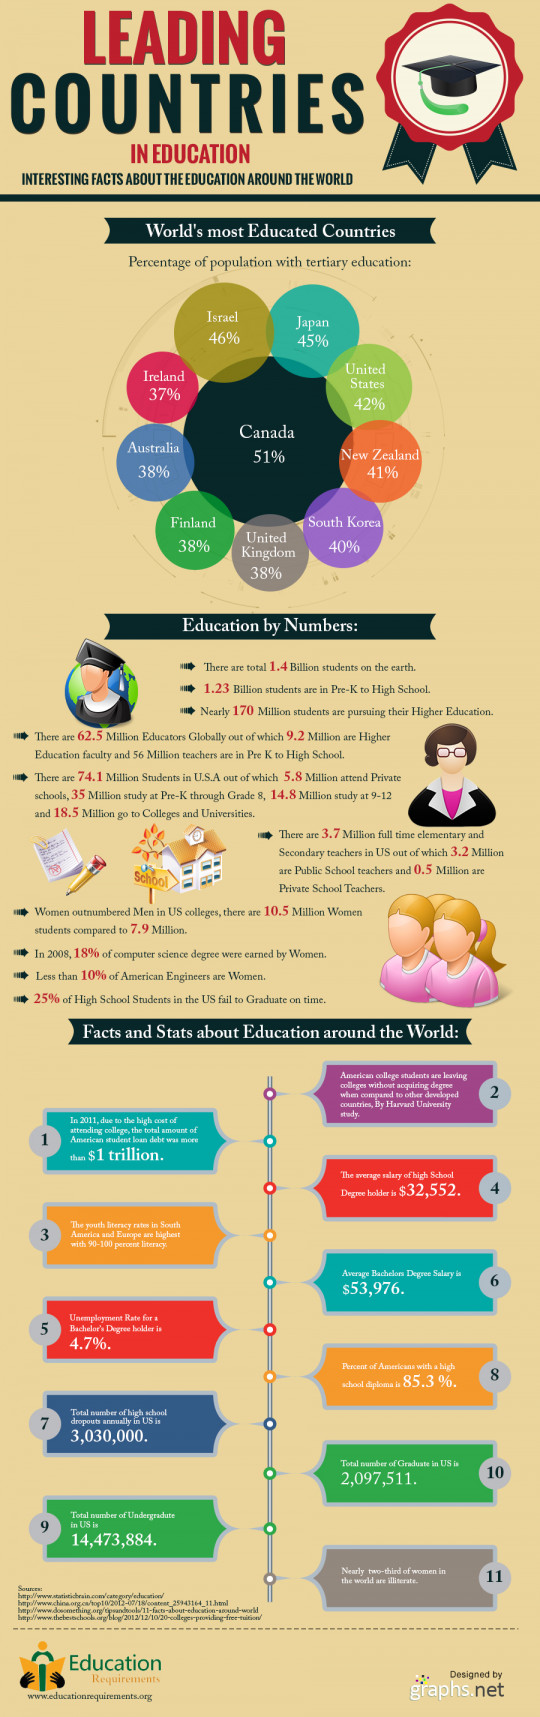 10 Top Countries That Leads The World In Education